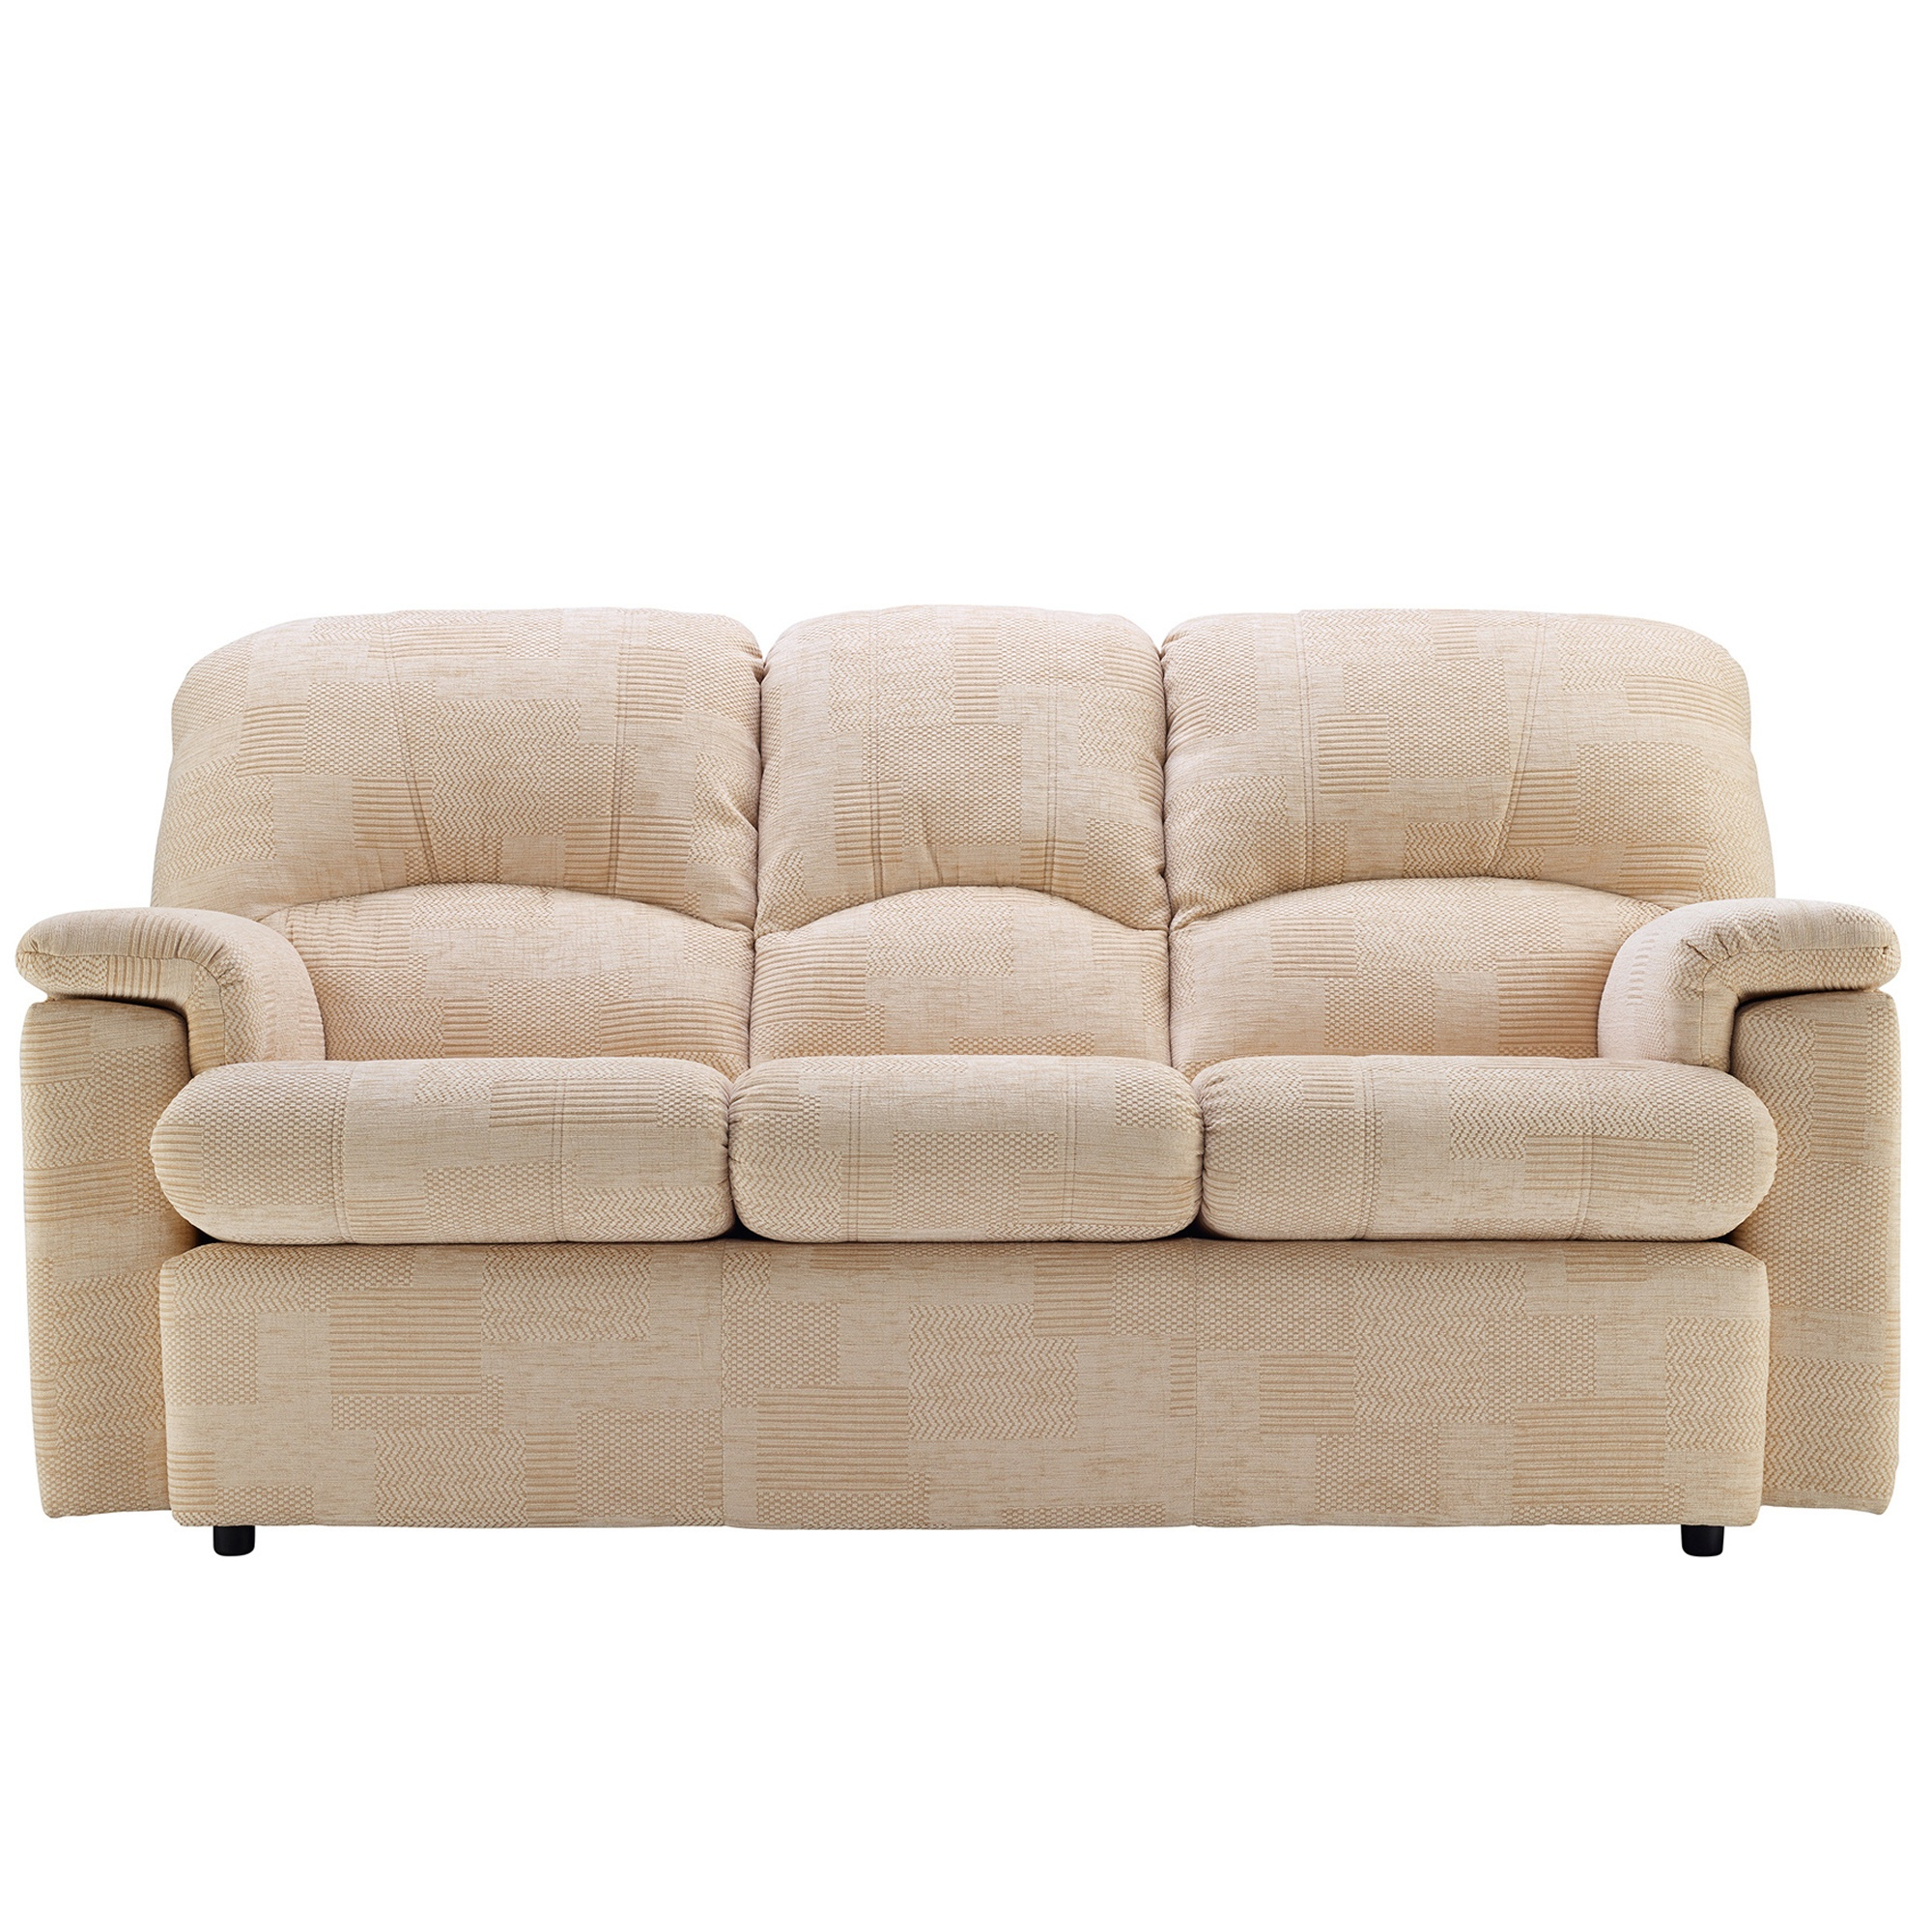 G Plan Chloe 3 Seater Sofa Leather Sofas Cookes Furniture : 1555 from www.cookesfurniture.co.uk size 2000 x 2000 jpeg 1787kB